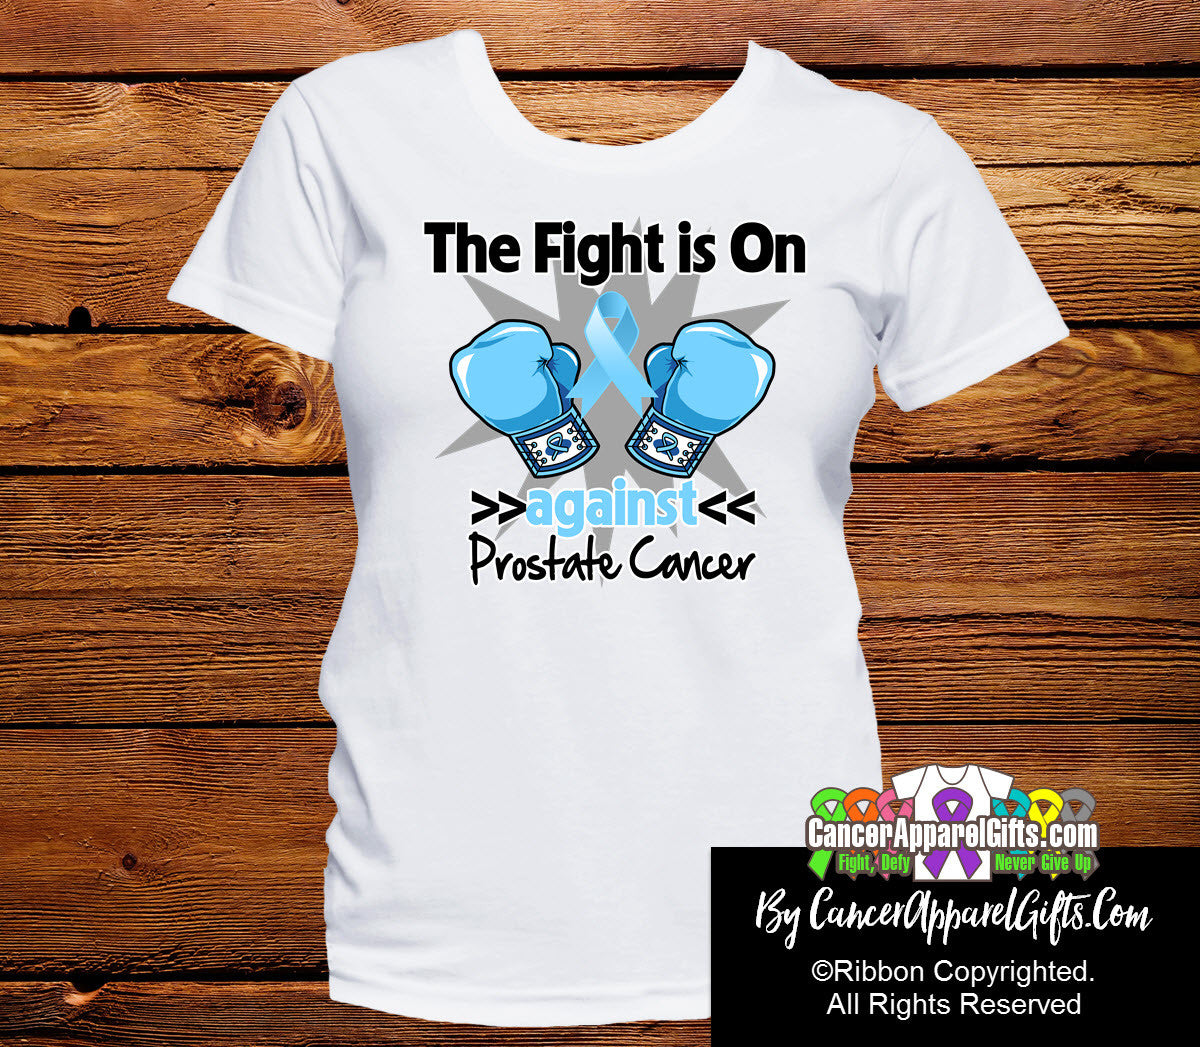 Prostate Cancer The Fight is On Ladies Shirts